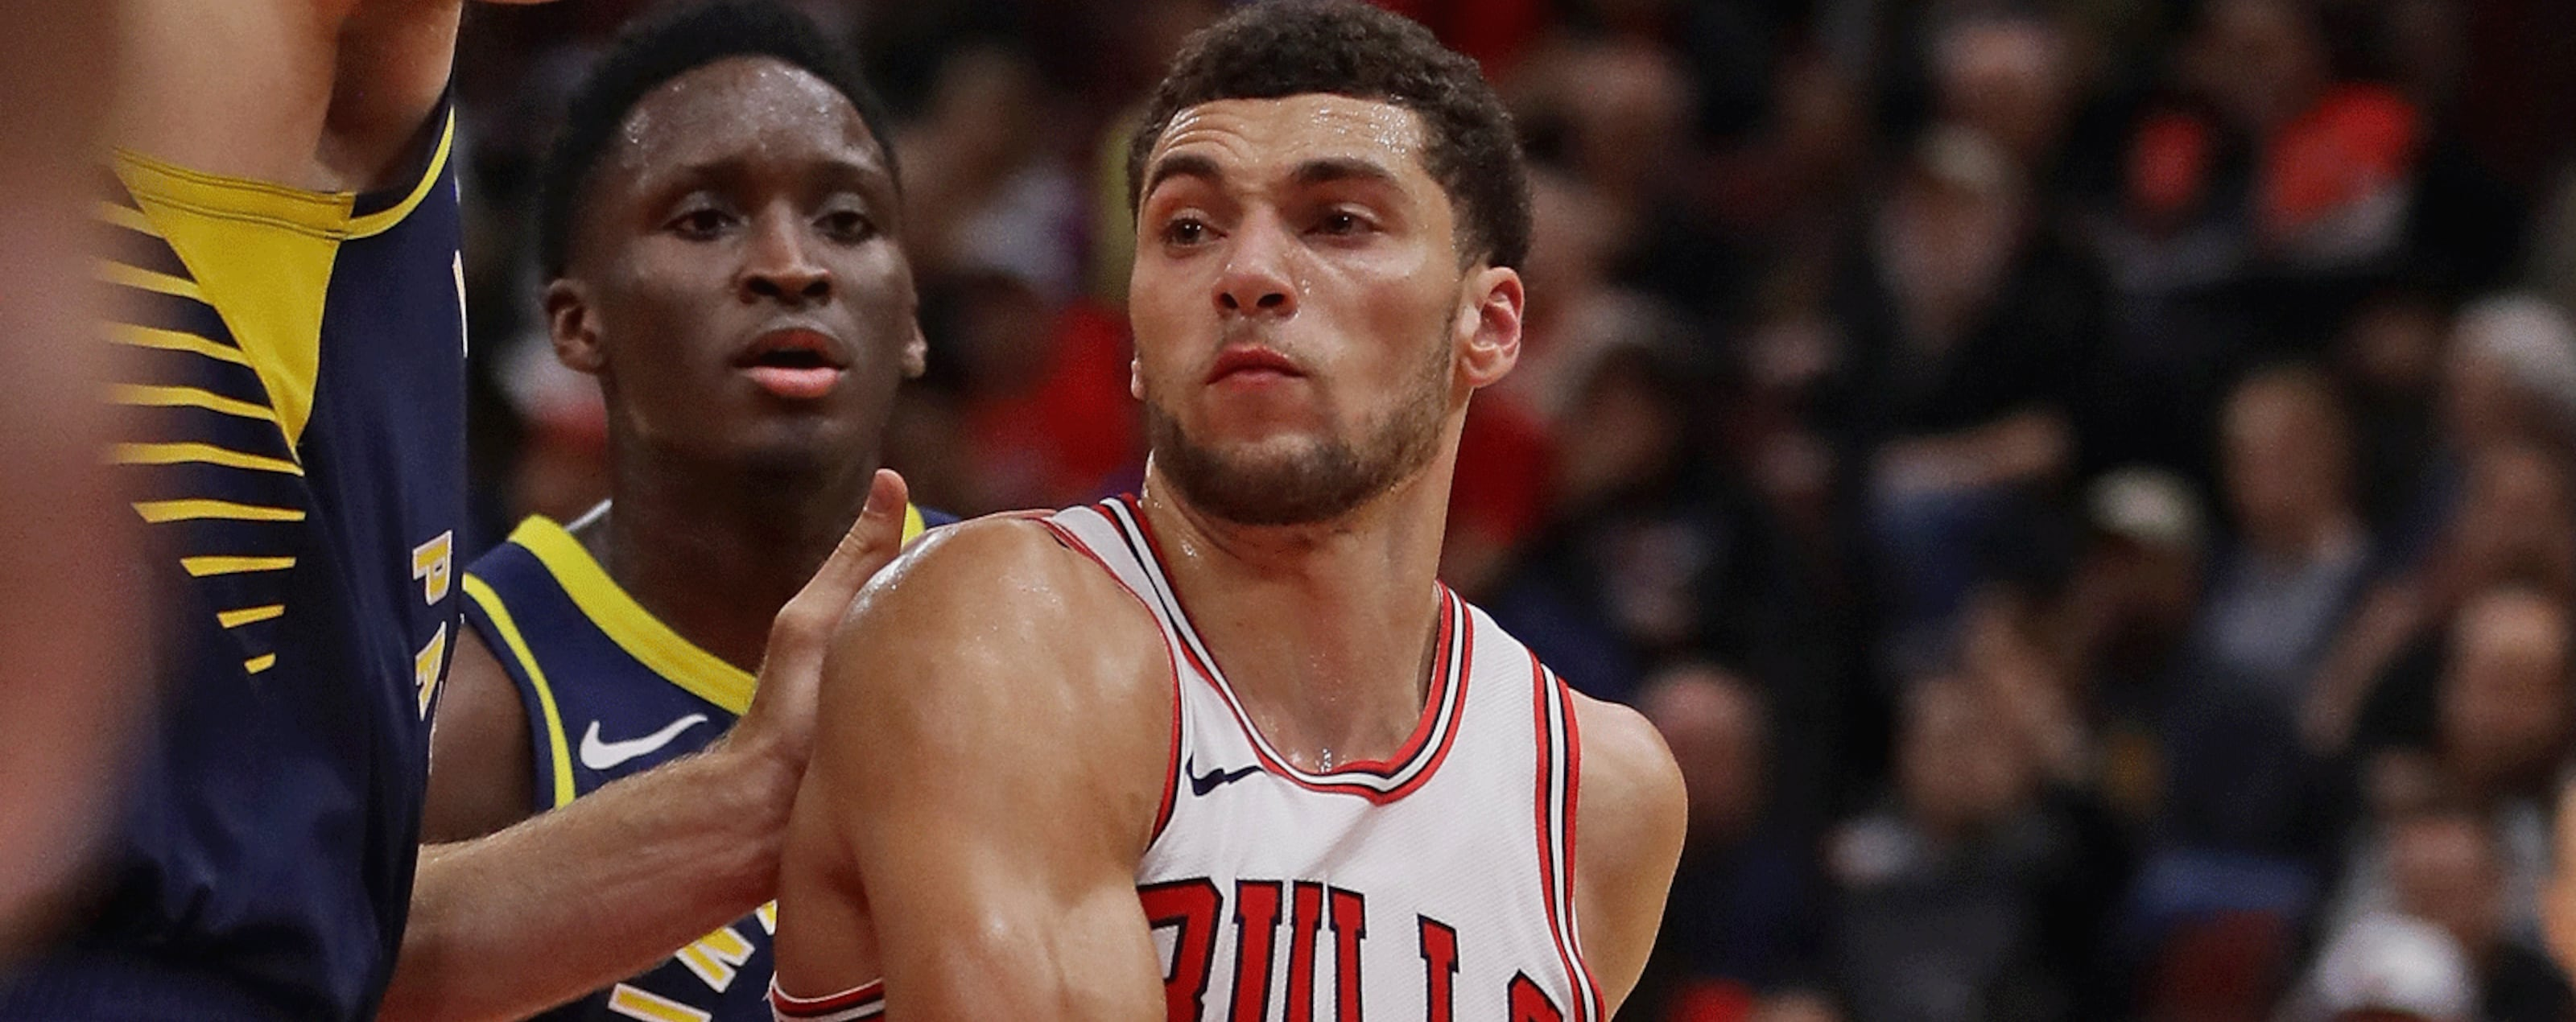 : Zach LaVine #8 of the Chicago Bulls drives against Domantas Sabonis #11 of the Indiana Pacers during a preseason game at the United Center on October 10, 2018 in Chicago, Illinois.